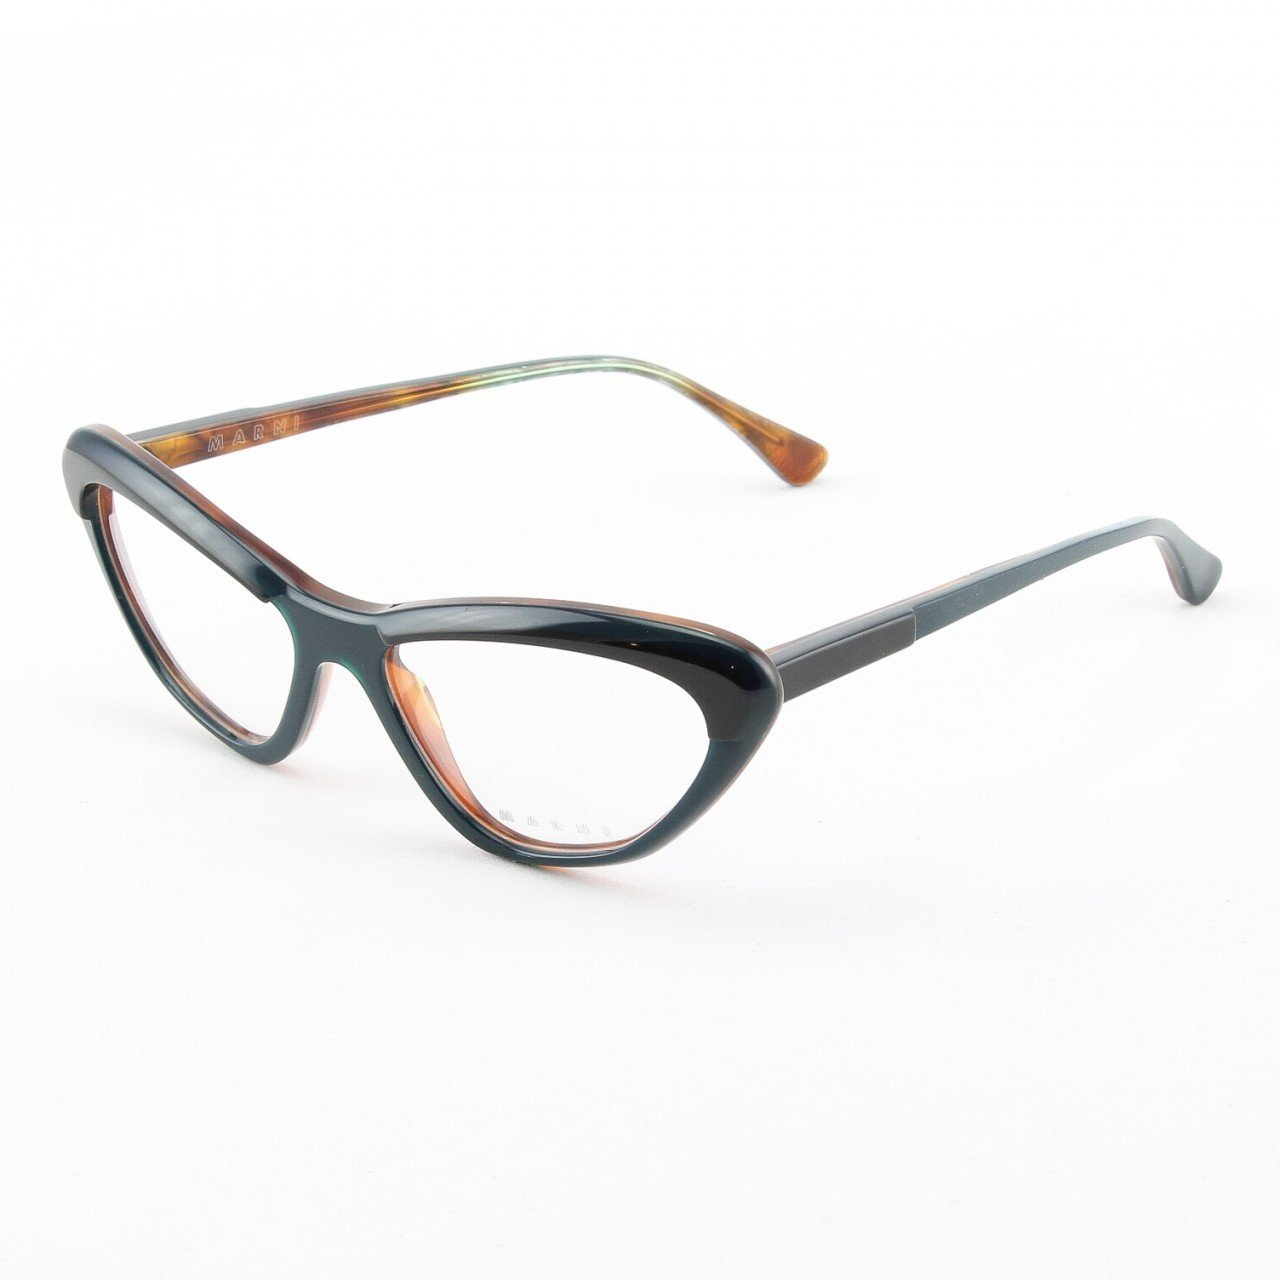 Marni MA675S Eyeglasses Col. 07 Two-tone Black and Teal Frame with Clear Lenses